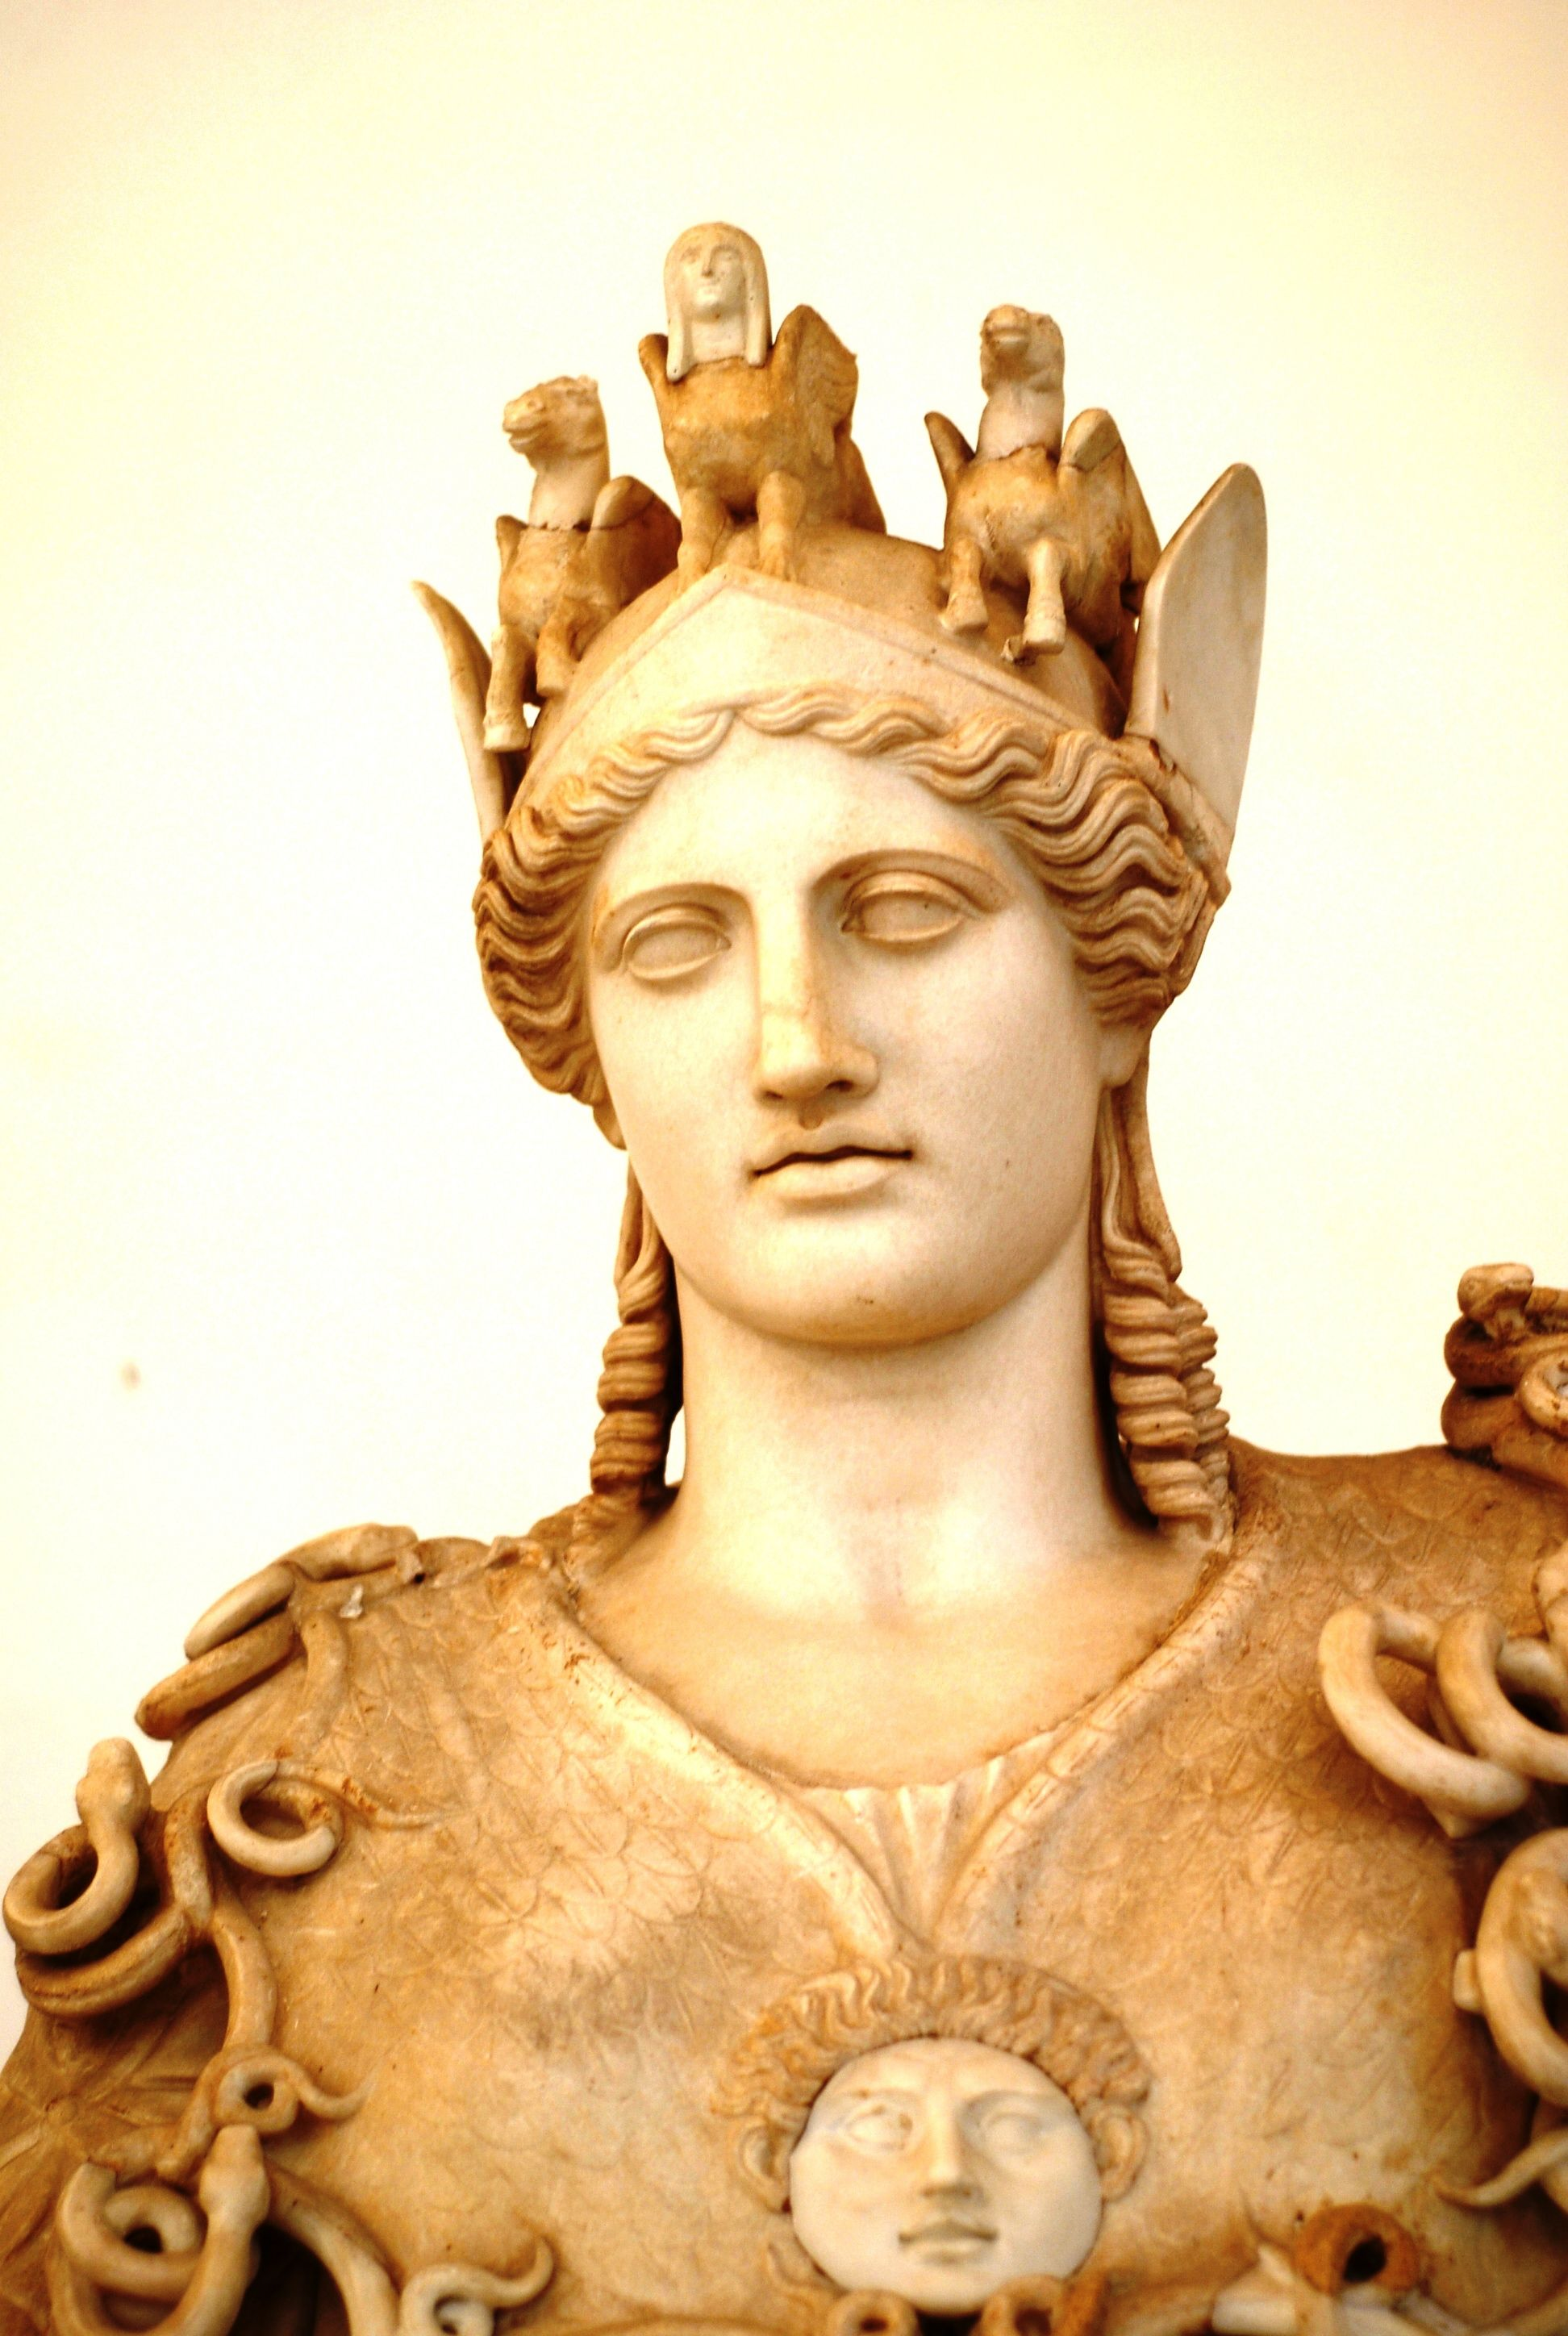 essay on athena goddess Free essay: hephaestus and aphrodite aphrodite aphrodite is one of the most famous figures of greek mythology because aphrodite was the greek goddess.